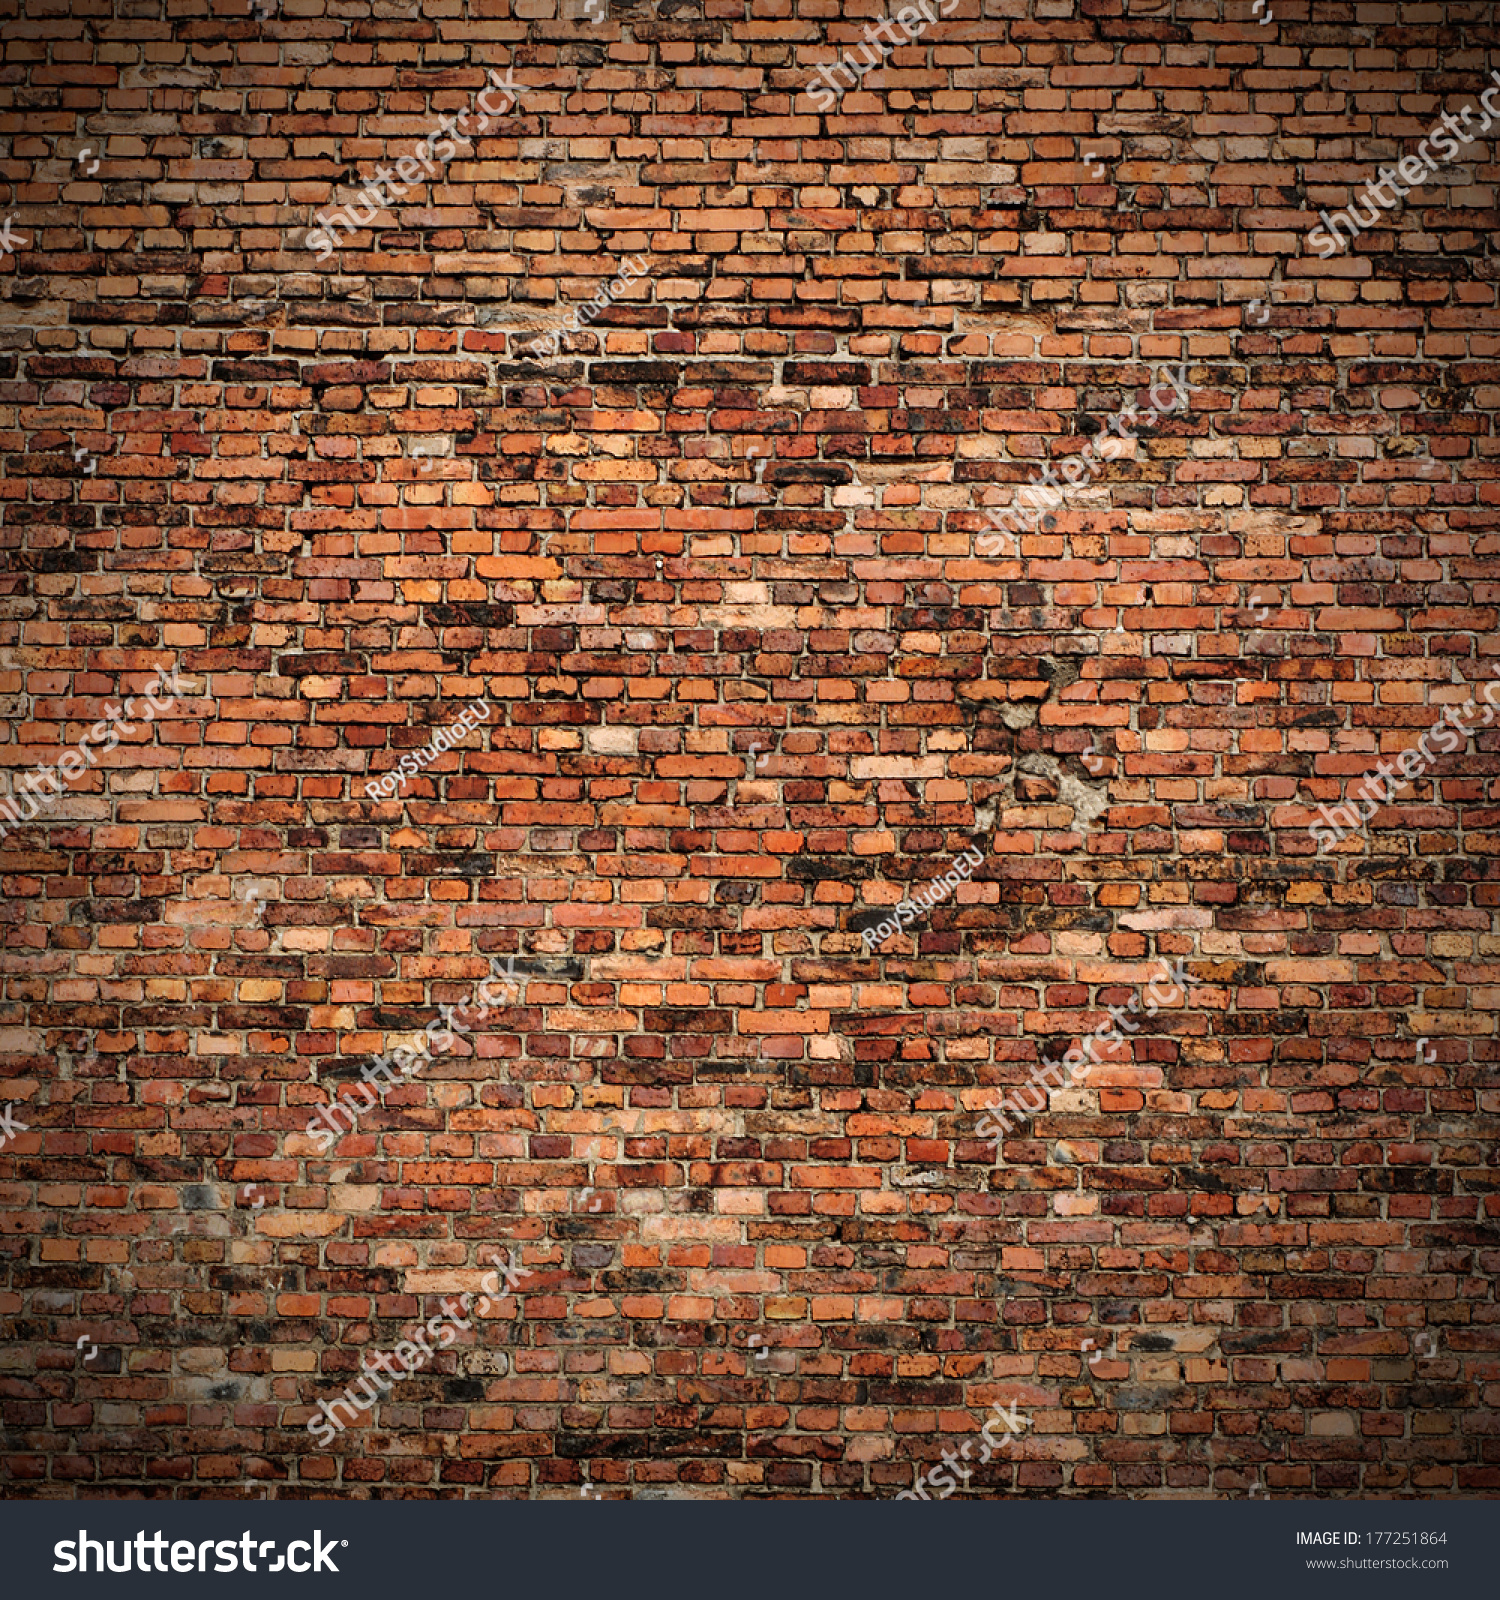 save to a lightbox stock photo red brick wall texture grunge background with vignetted corners to interior design